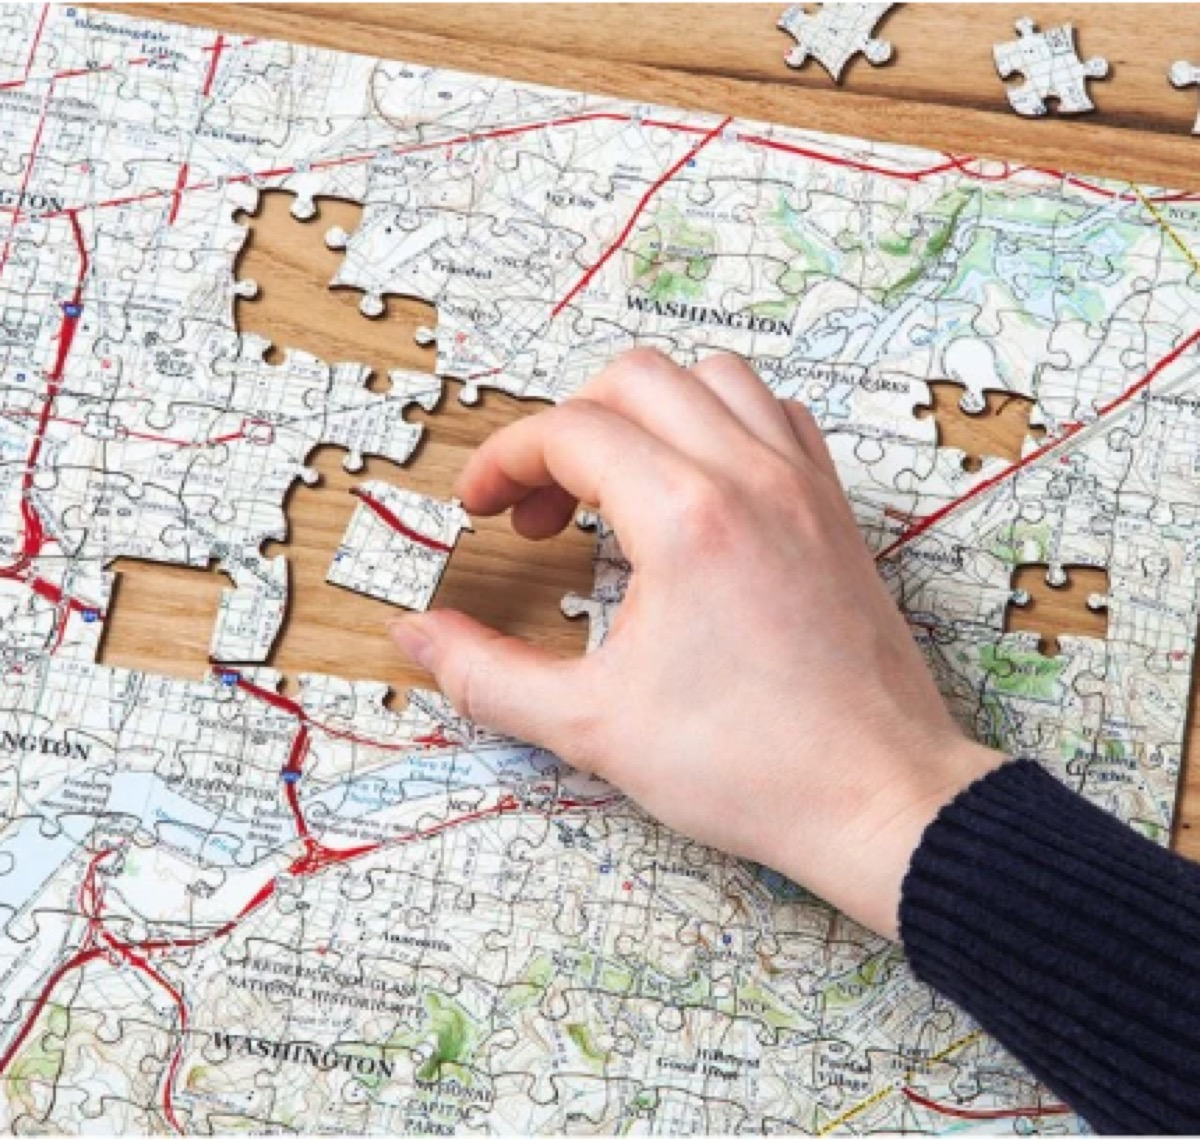 white hand putting together puzzle of washington state